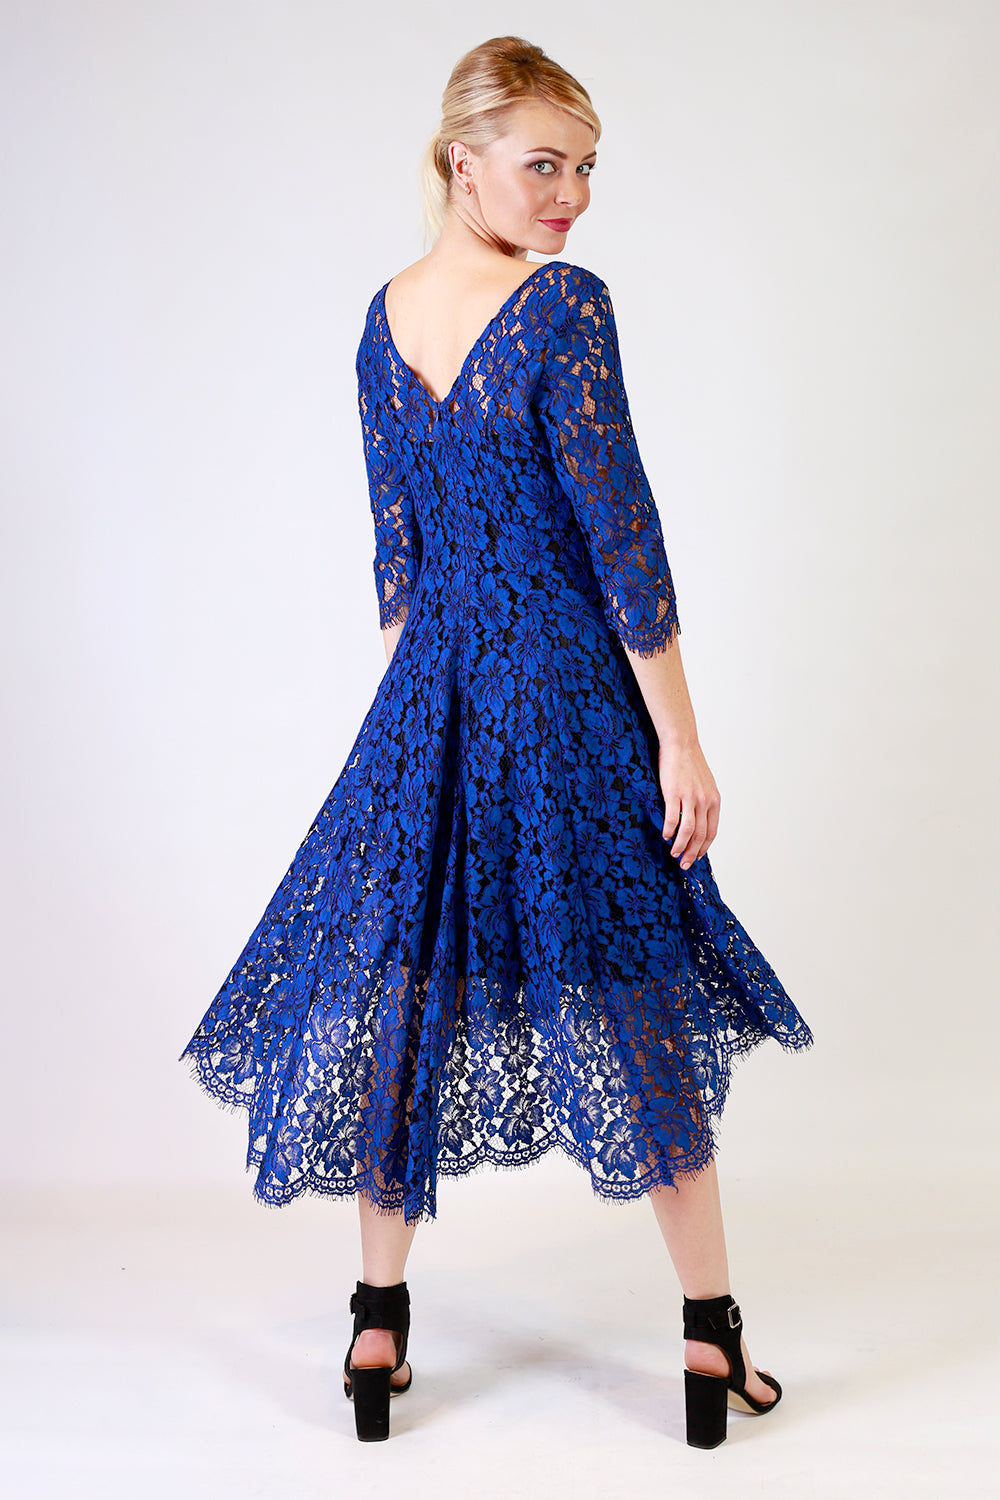 Summer Dress | Lace Dress | New Zealand Fashion Designer | Annah Stretton